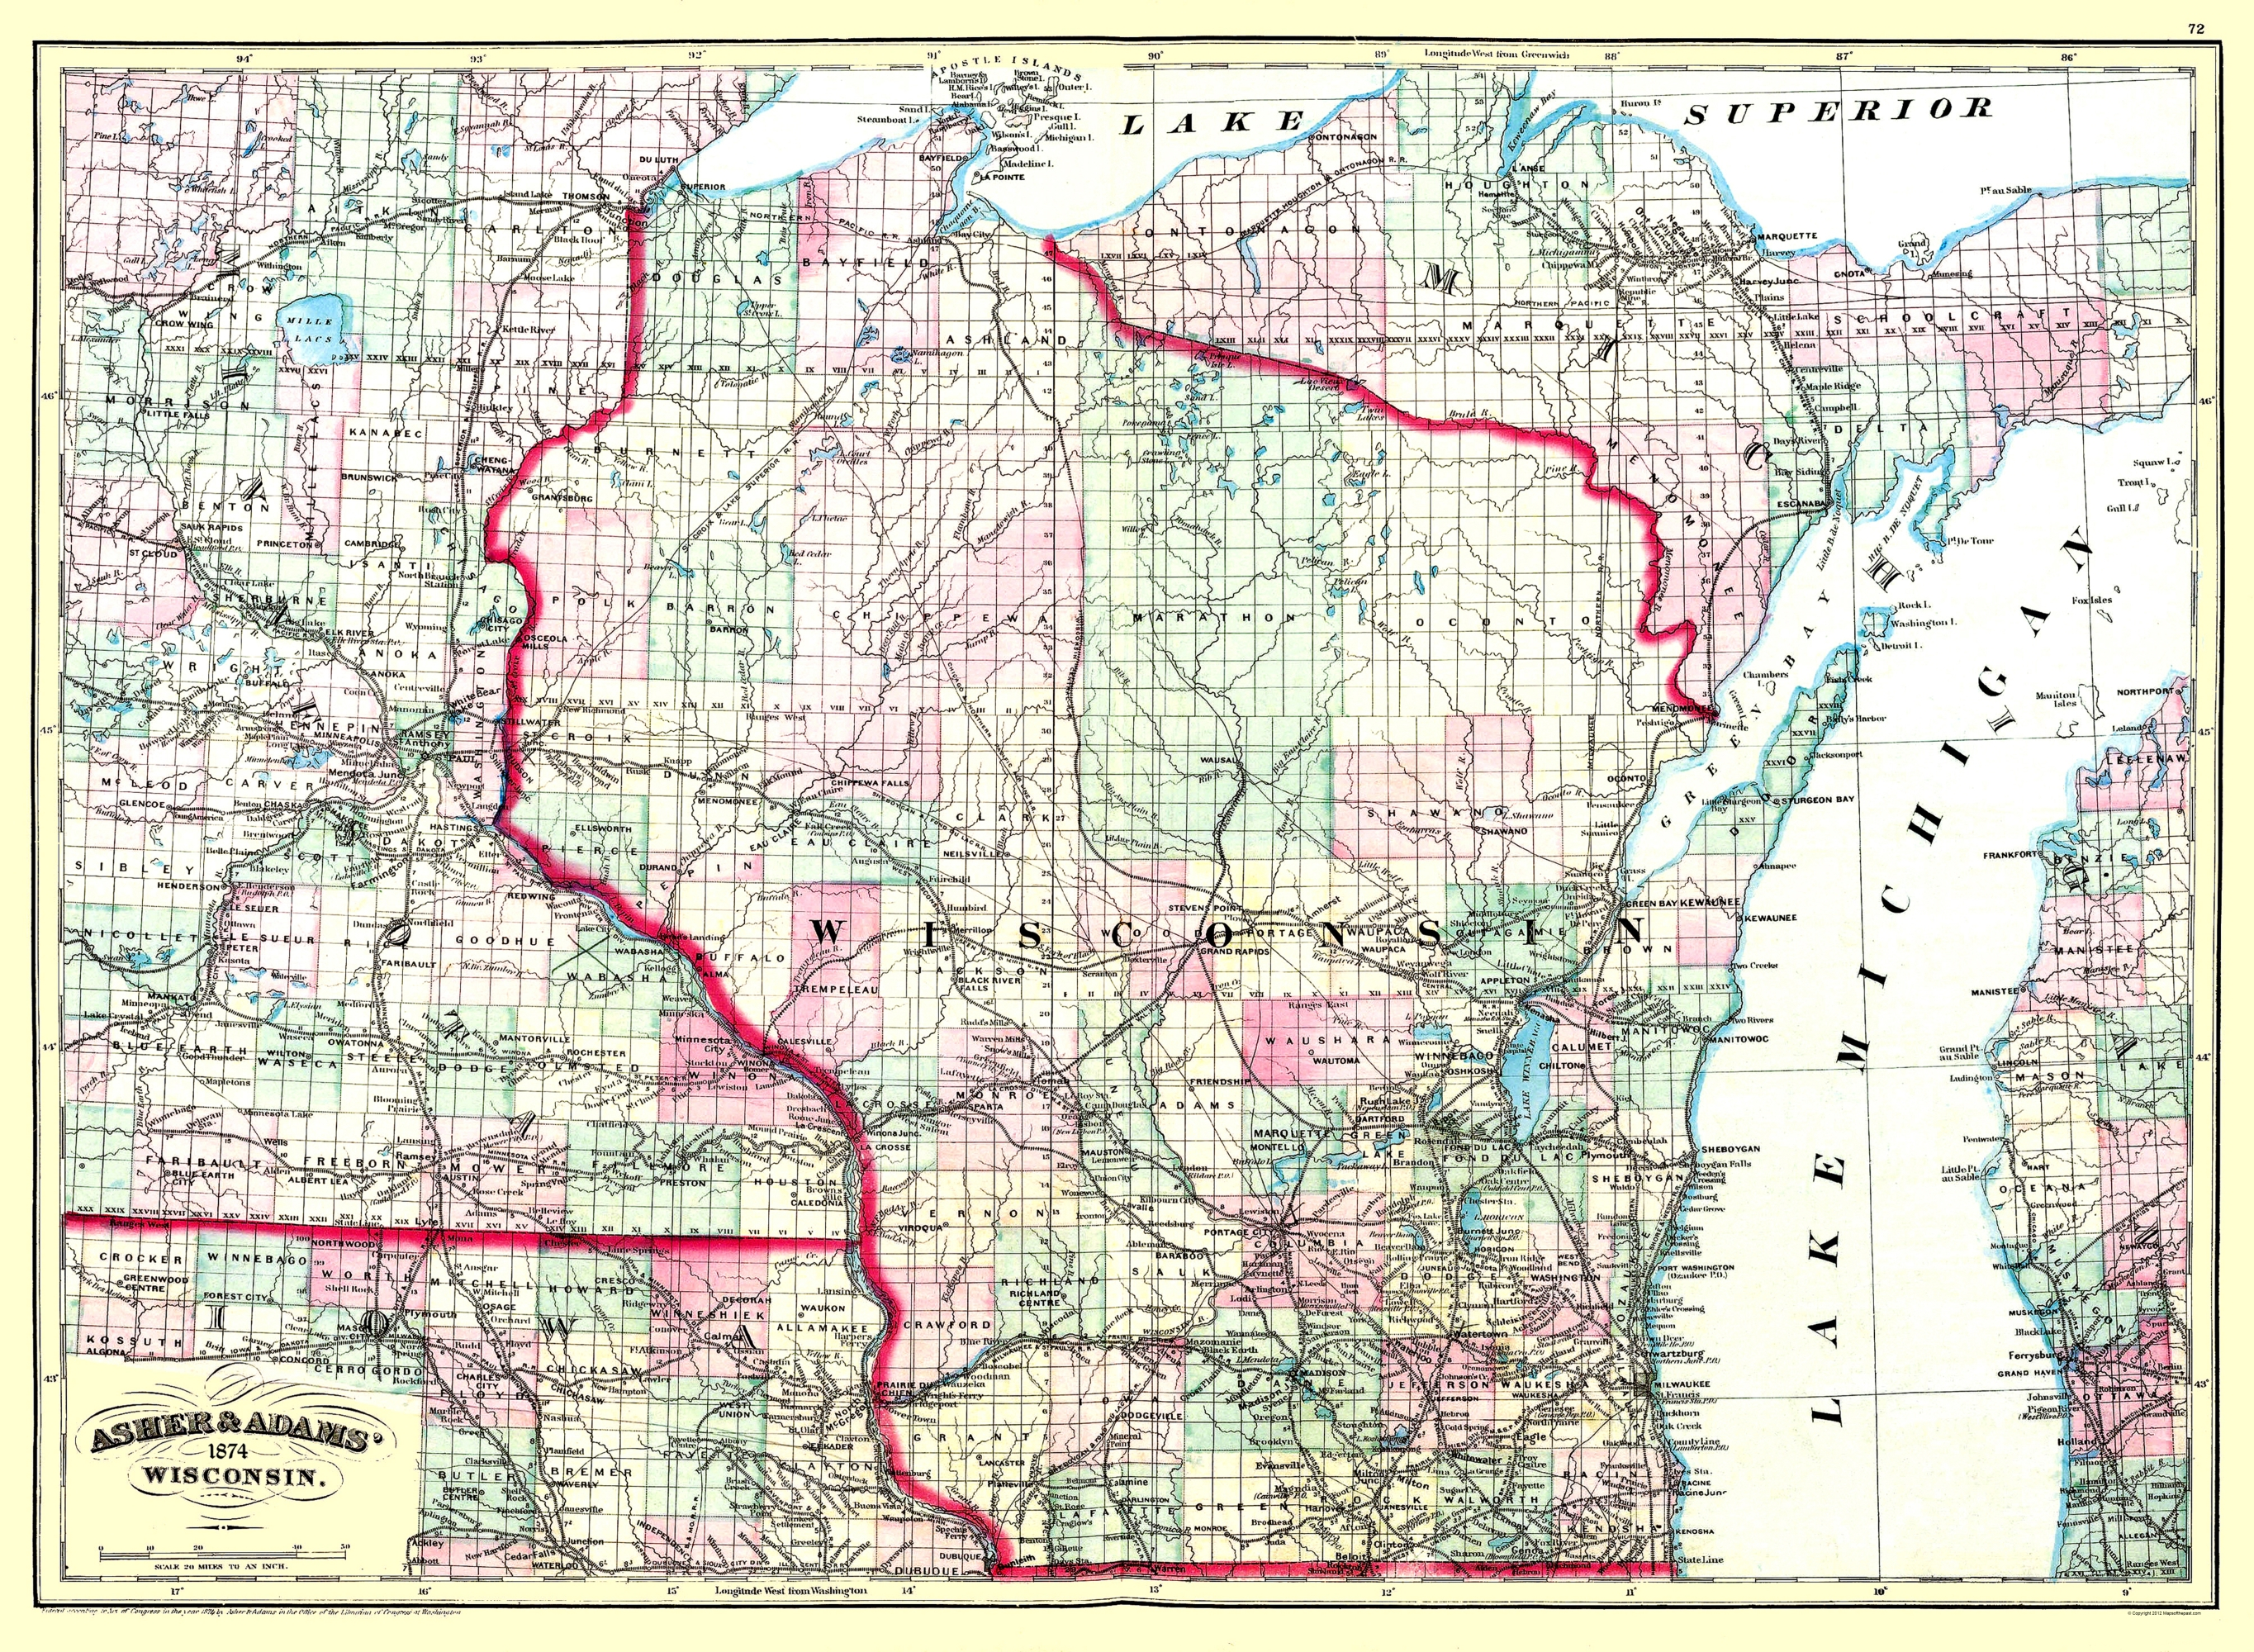 Old State Map Wisconsin Asher and Adams 1874